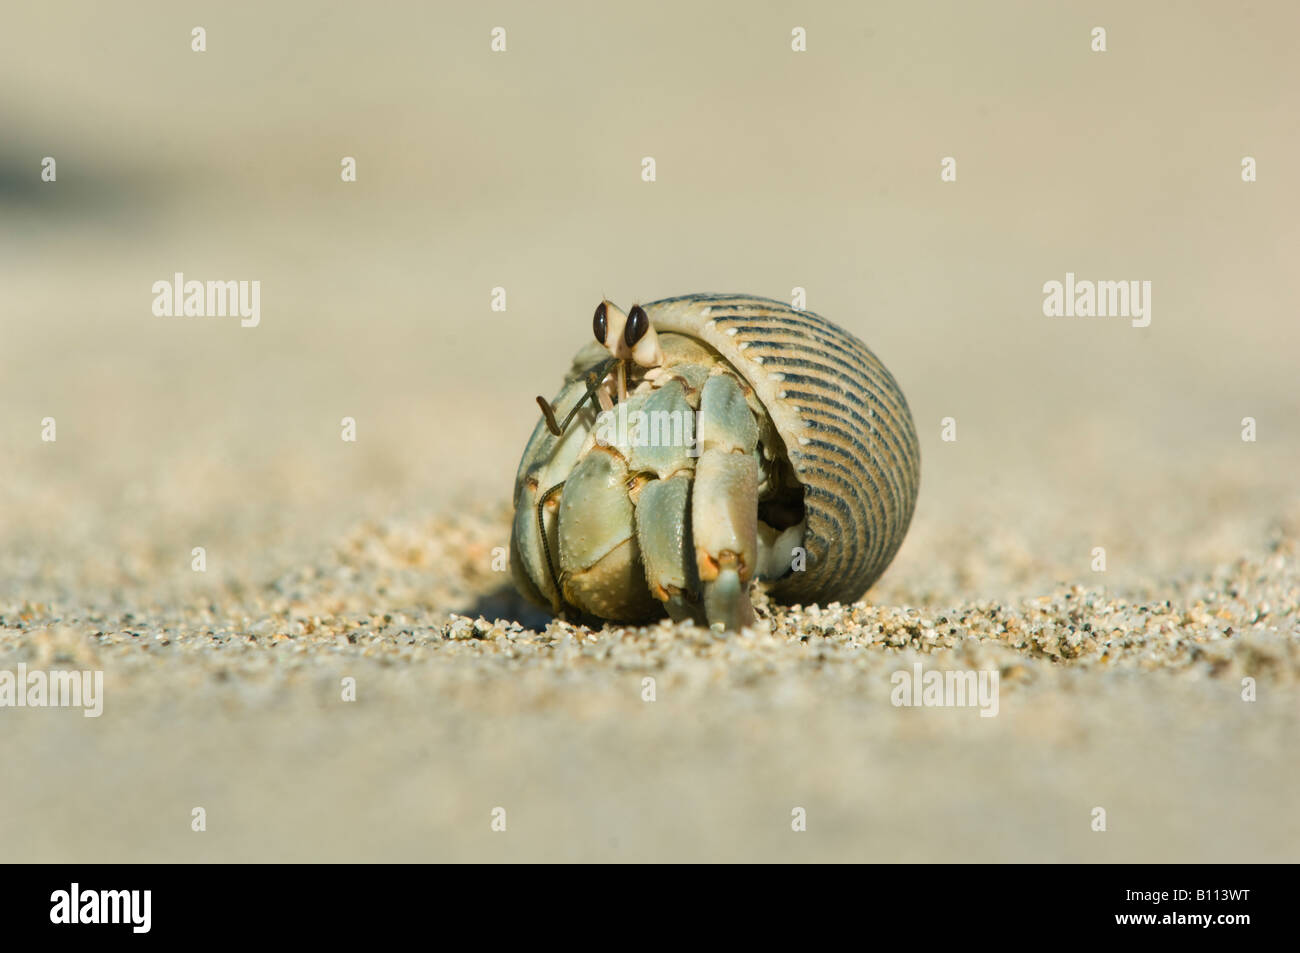 Hermit Crab, Sea of Cortez, Baja California MEXICO - Stock Image